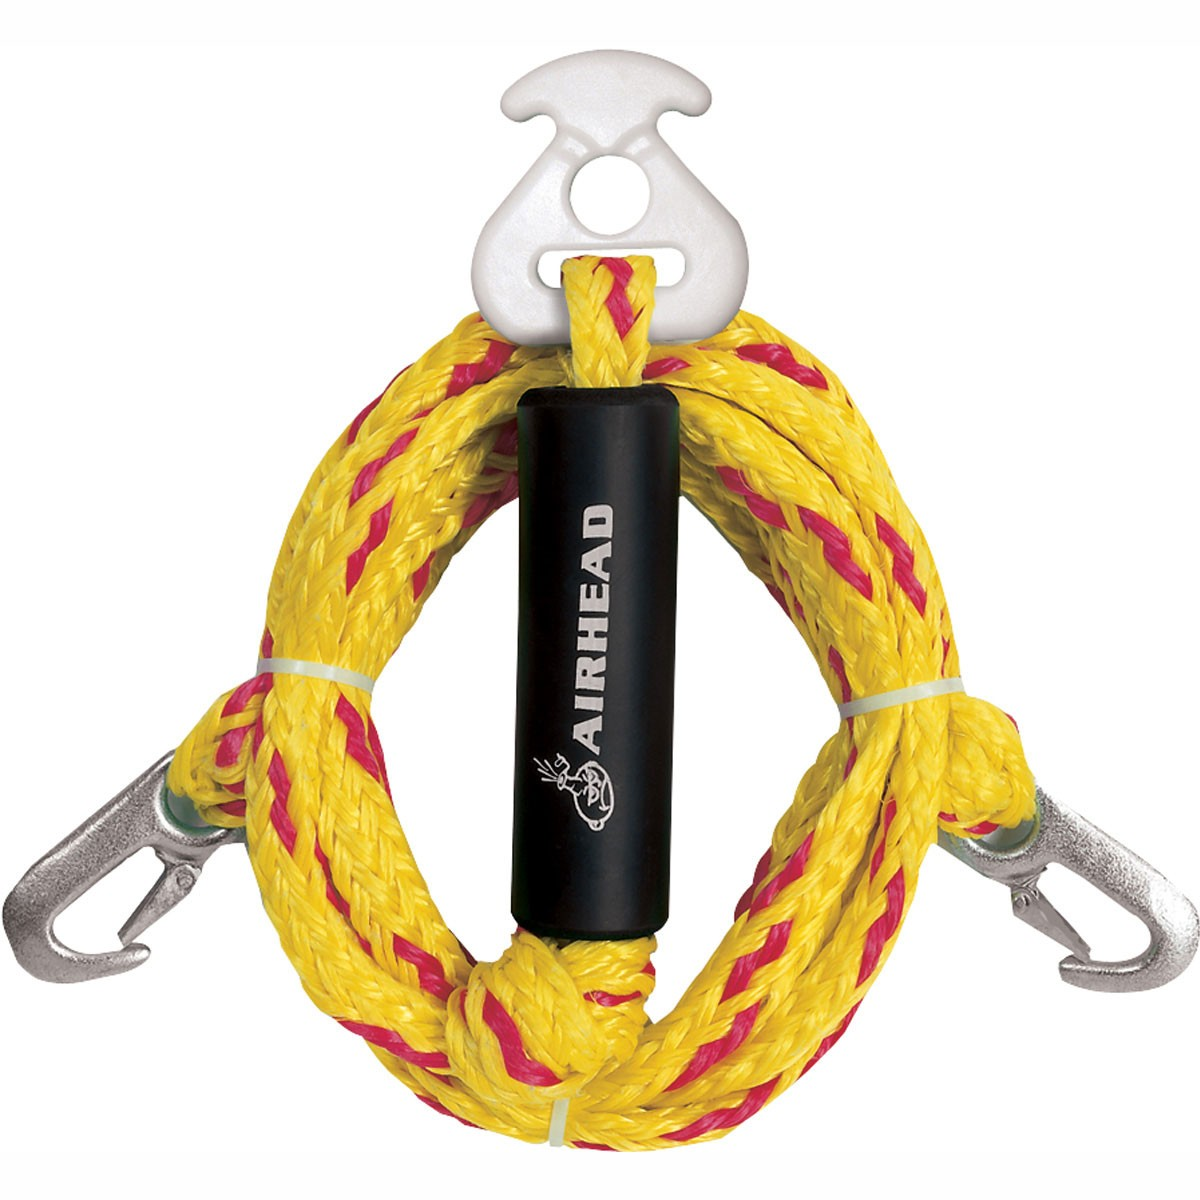 airhead heavy duty tow harness for inflatable tow tubes ebayairhead heavy duty tow harness for inflatable tow tubes